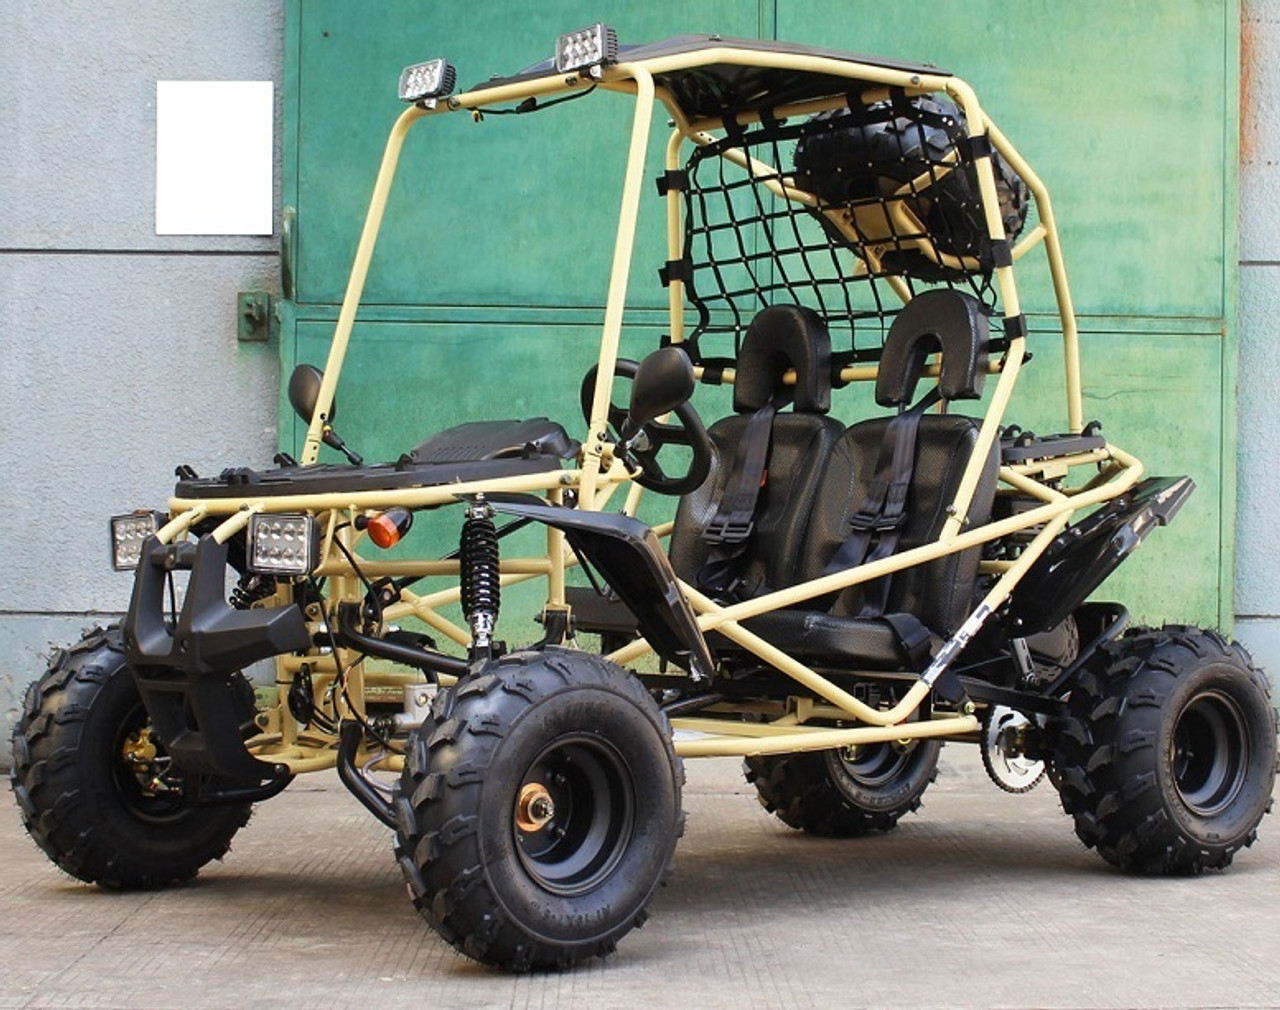 New Vitacci Pathfinder 200 GSX (DF200GSX) 196cc Go Kart, Single Cylinder, 4-Storke - Fully Assembled and Tested